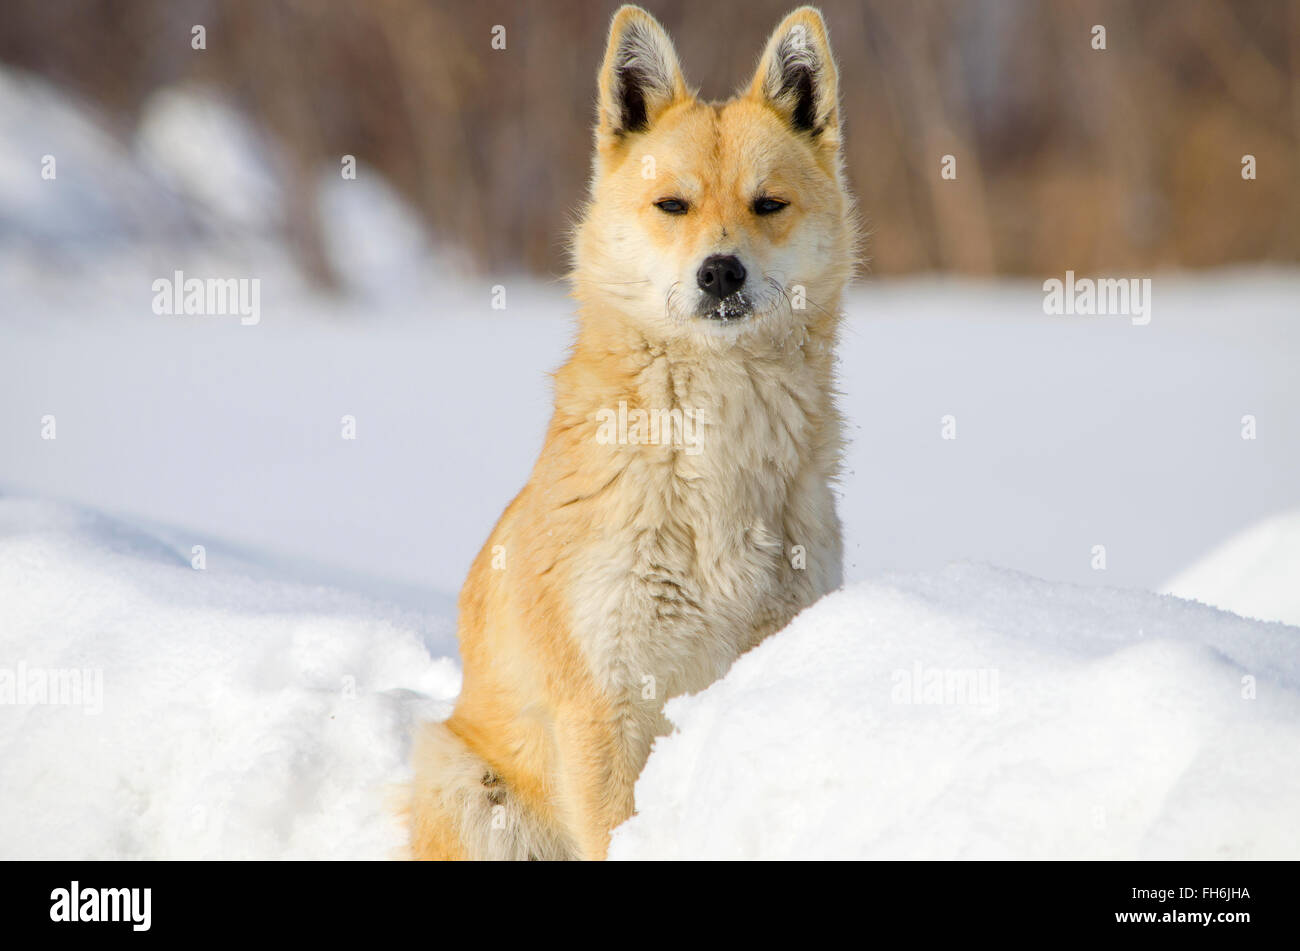 The watchdog in snow, a dog, a snowdrift, animal, house, in the village, in the winter, red, sits - Stock Image